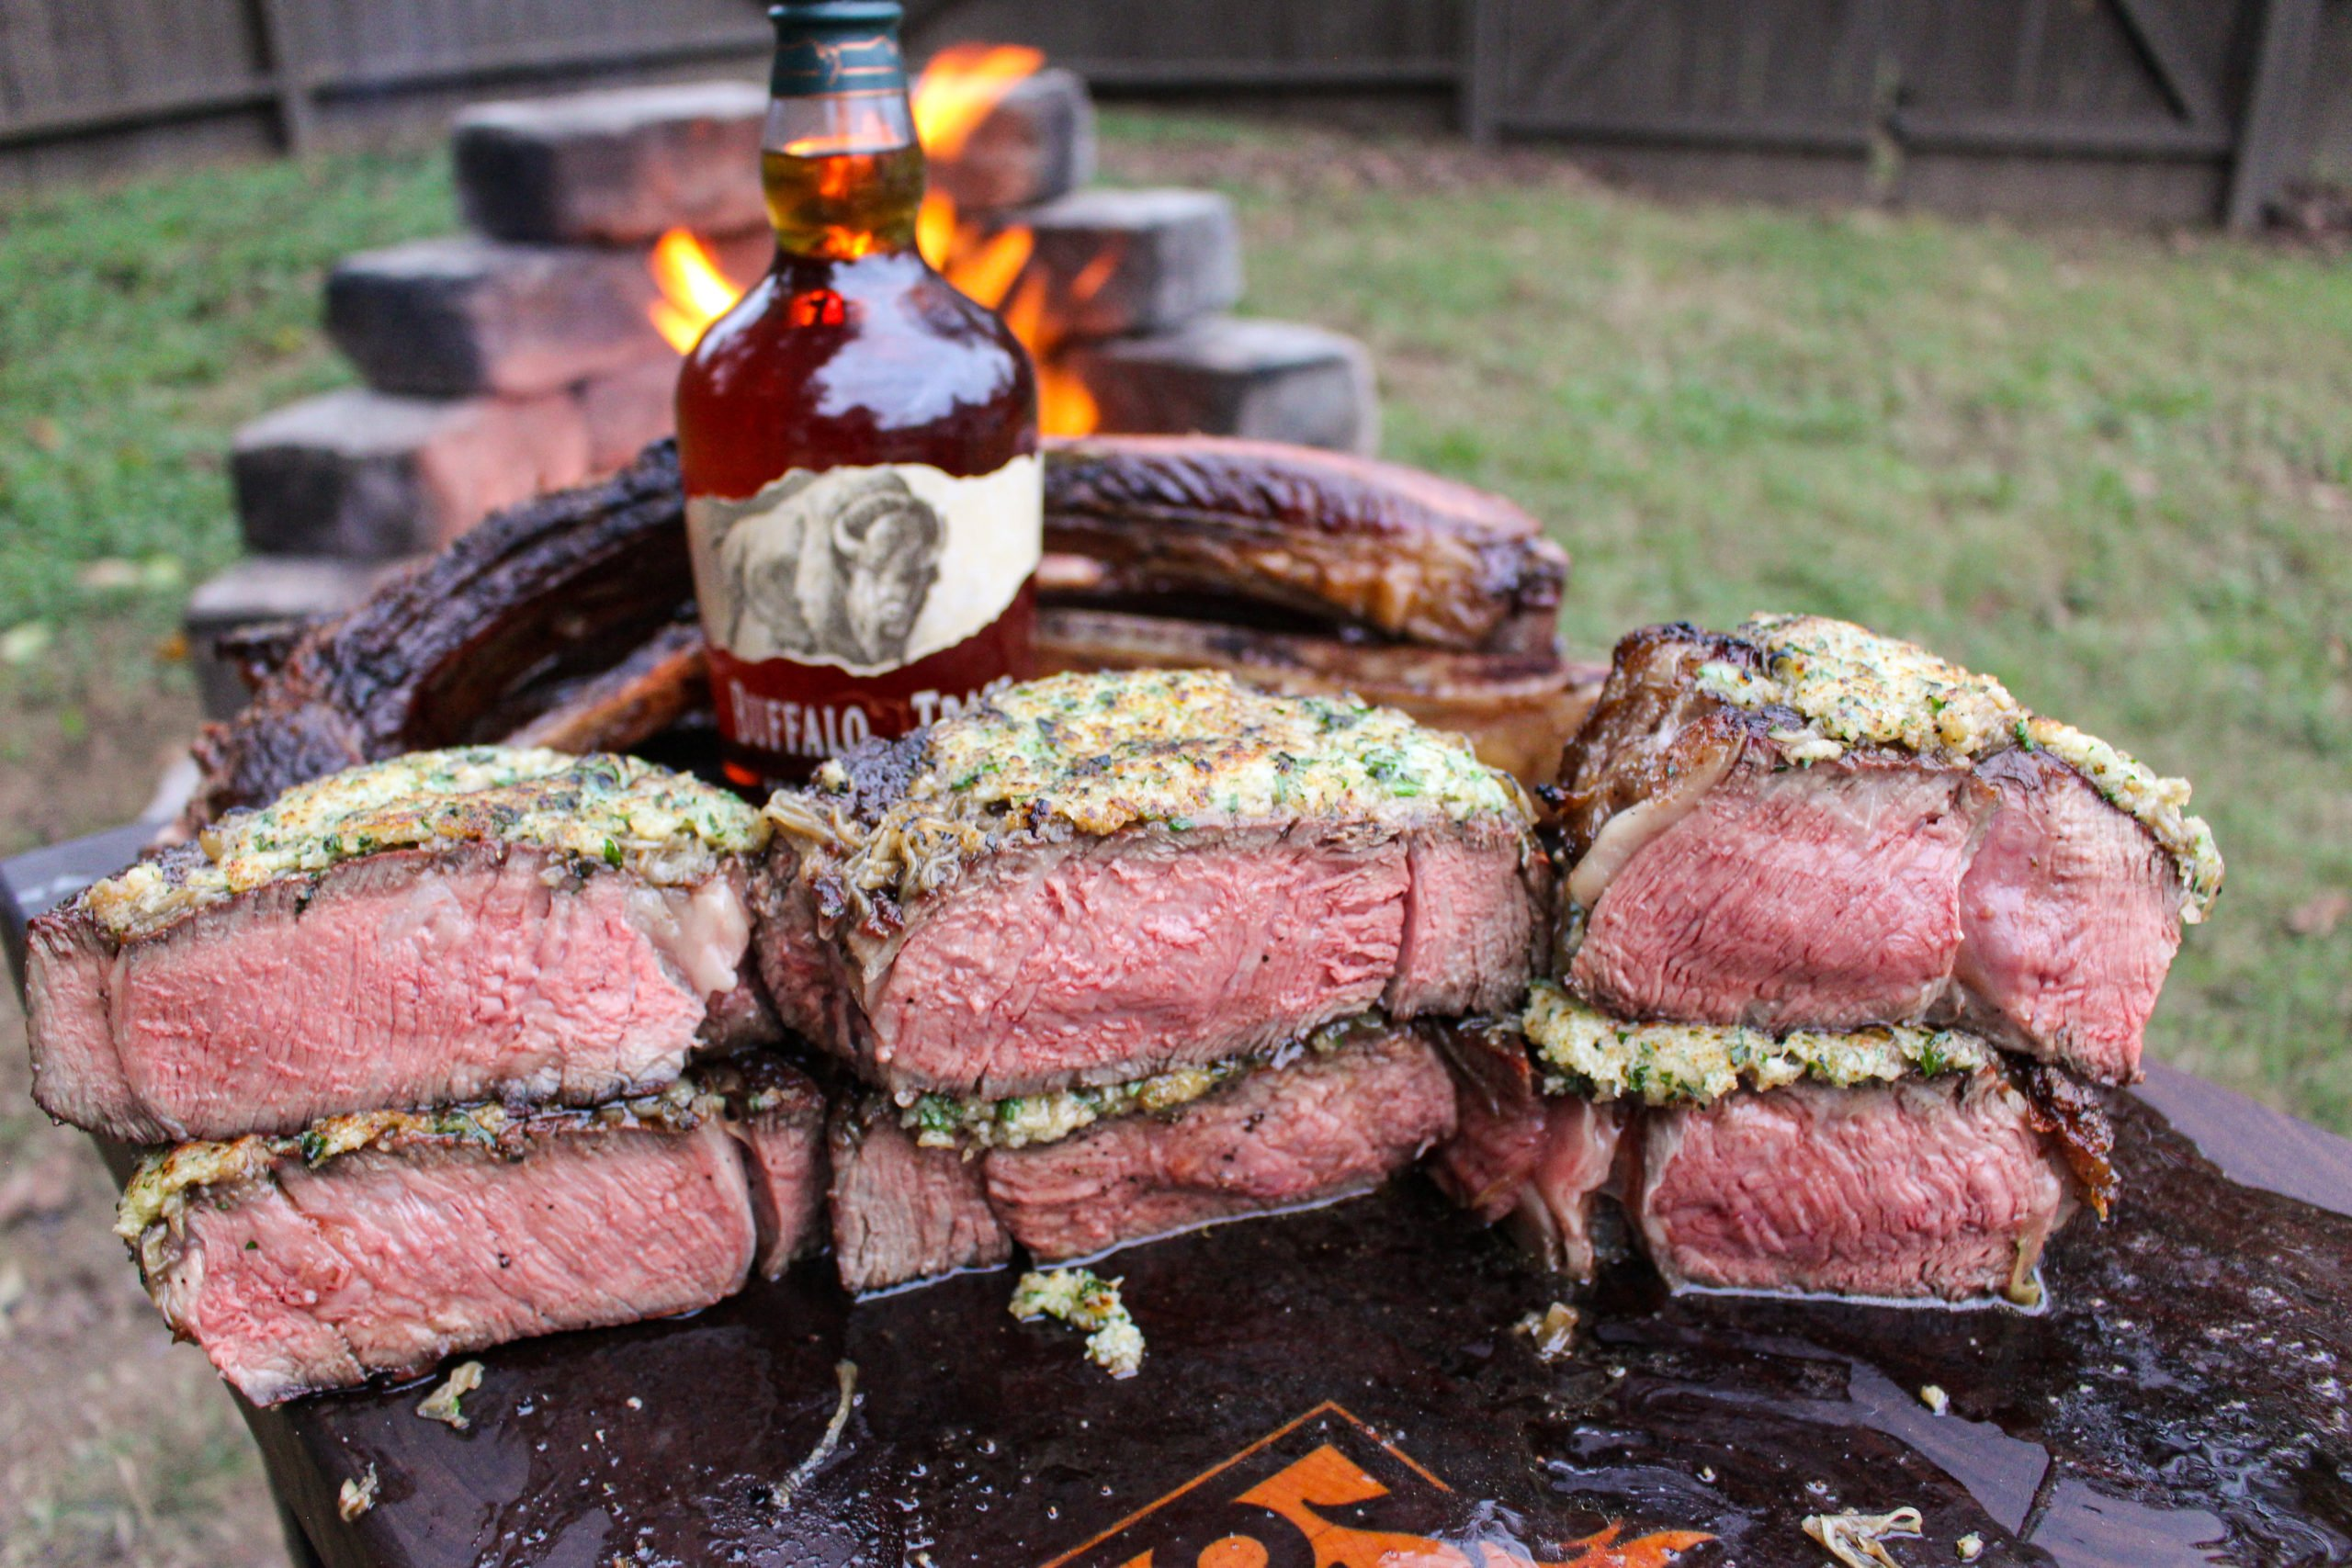 Tomahawk Steaks with French Onion Crust sliced and ready to eat.